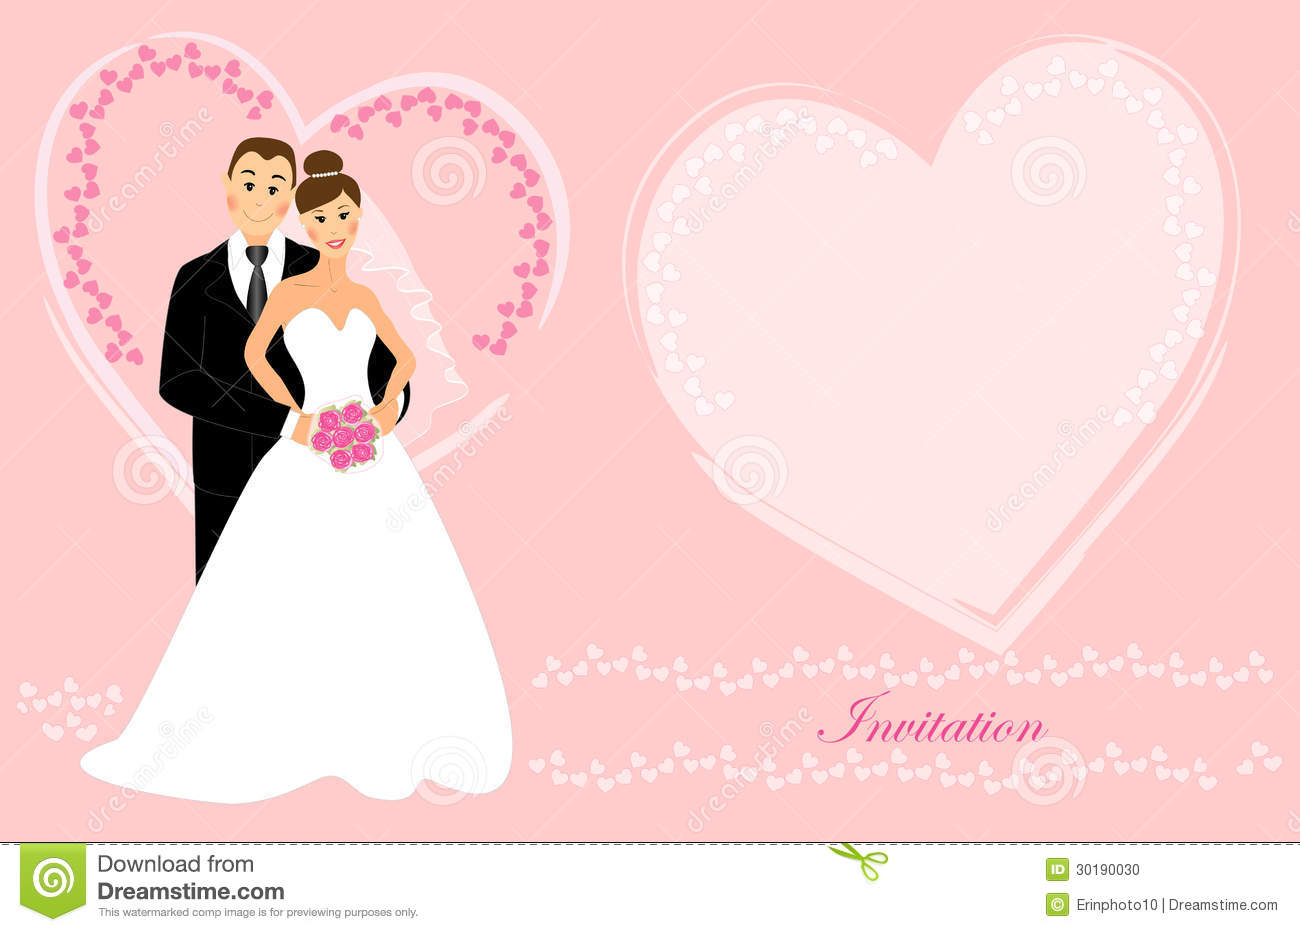 Wedding Invitation 6 Stock Illustration Image Of Eyes: married to design